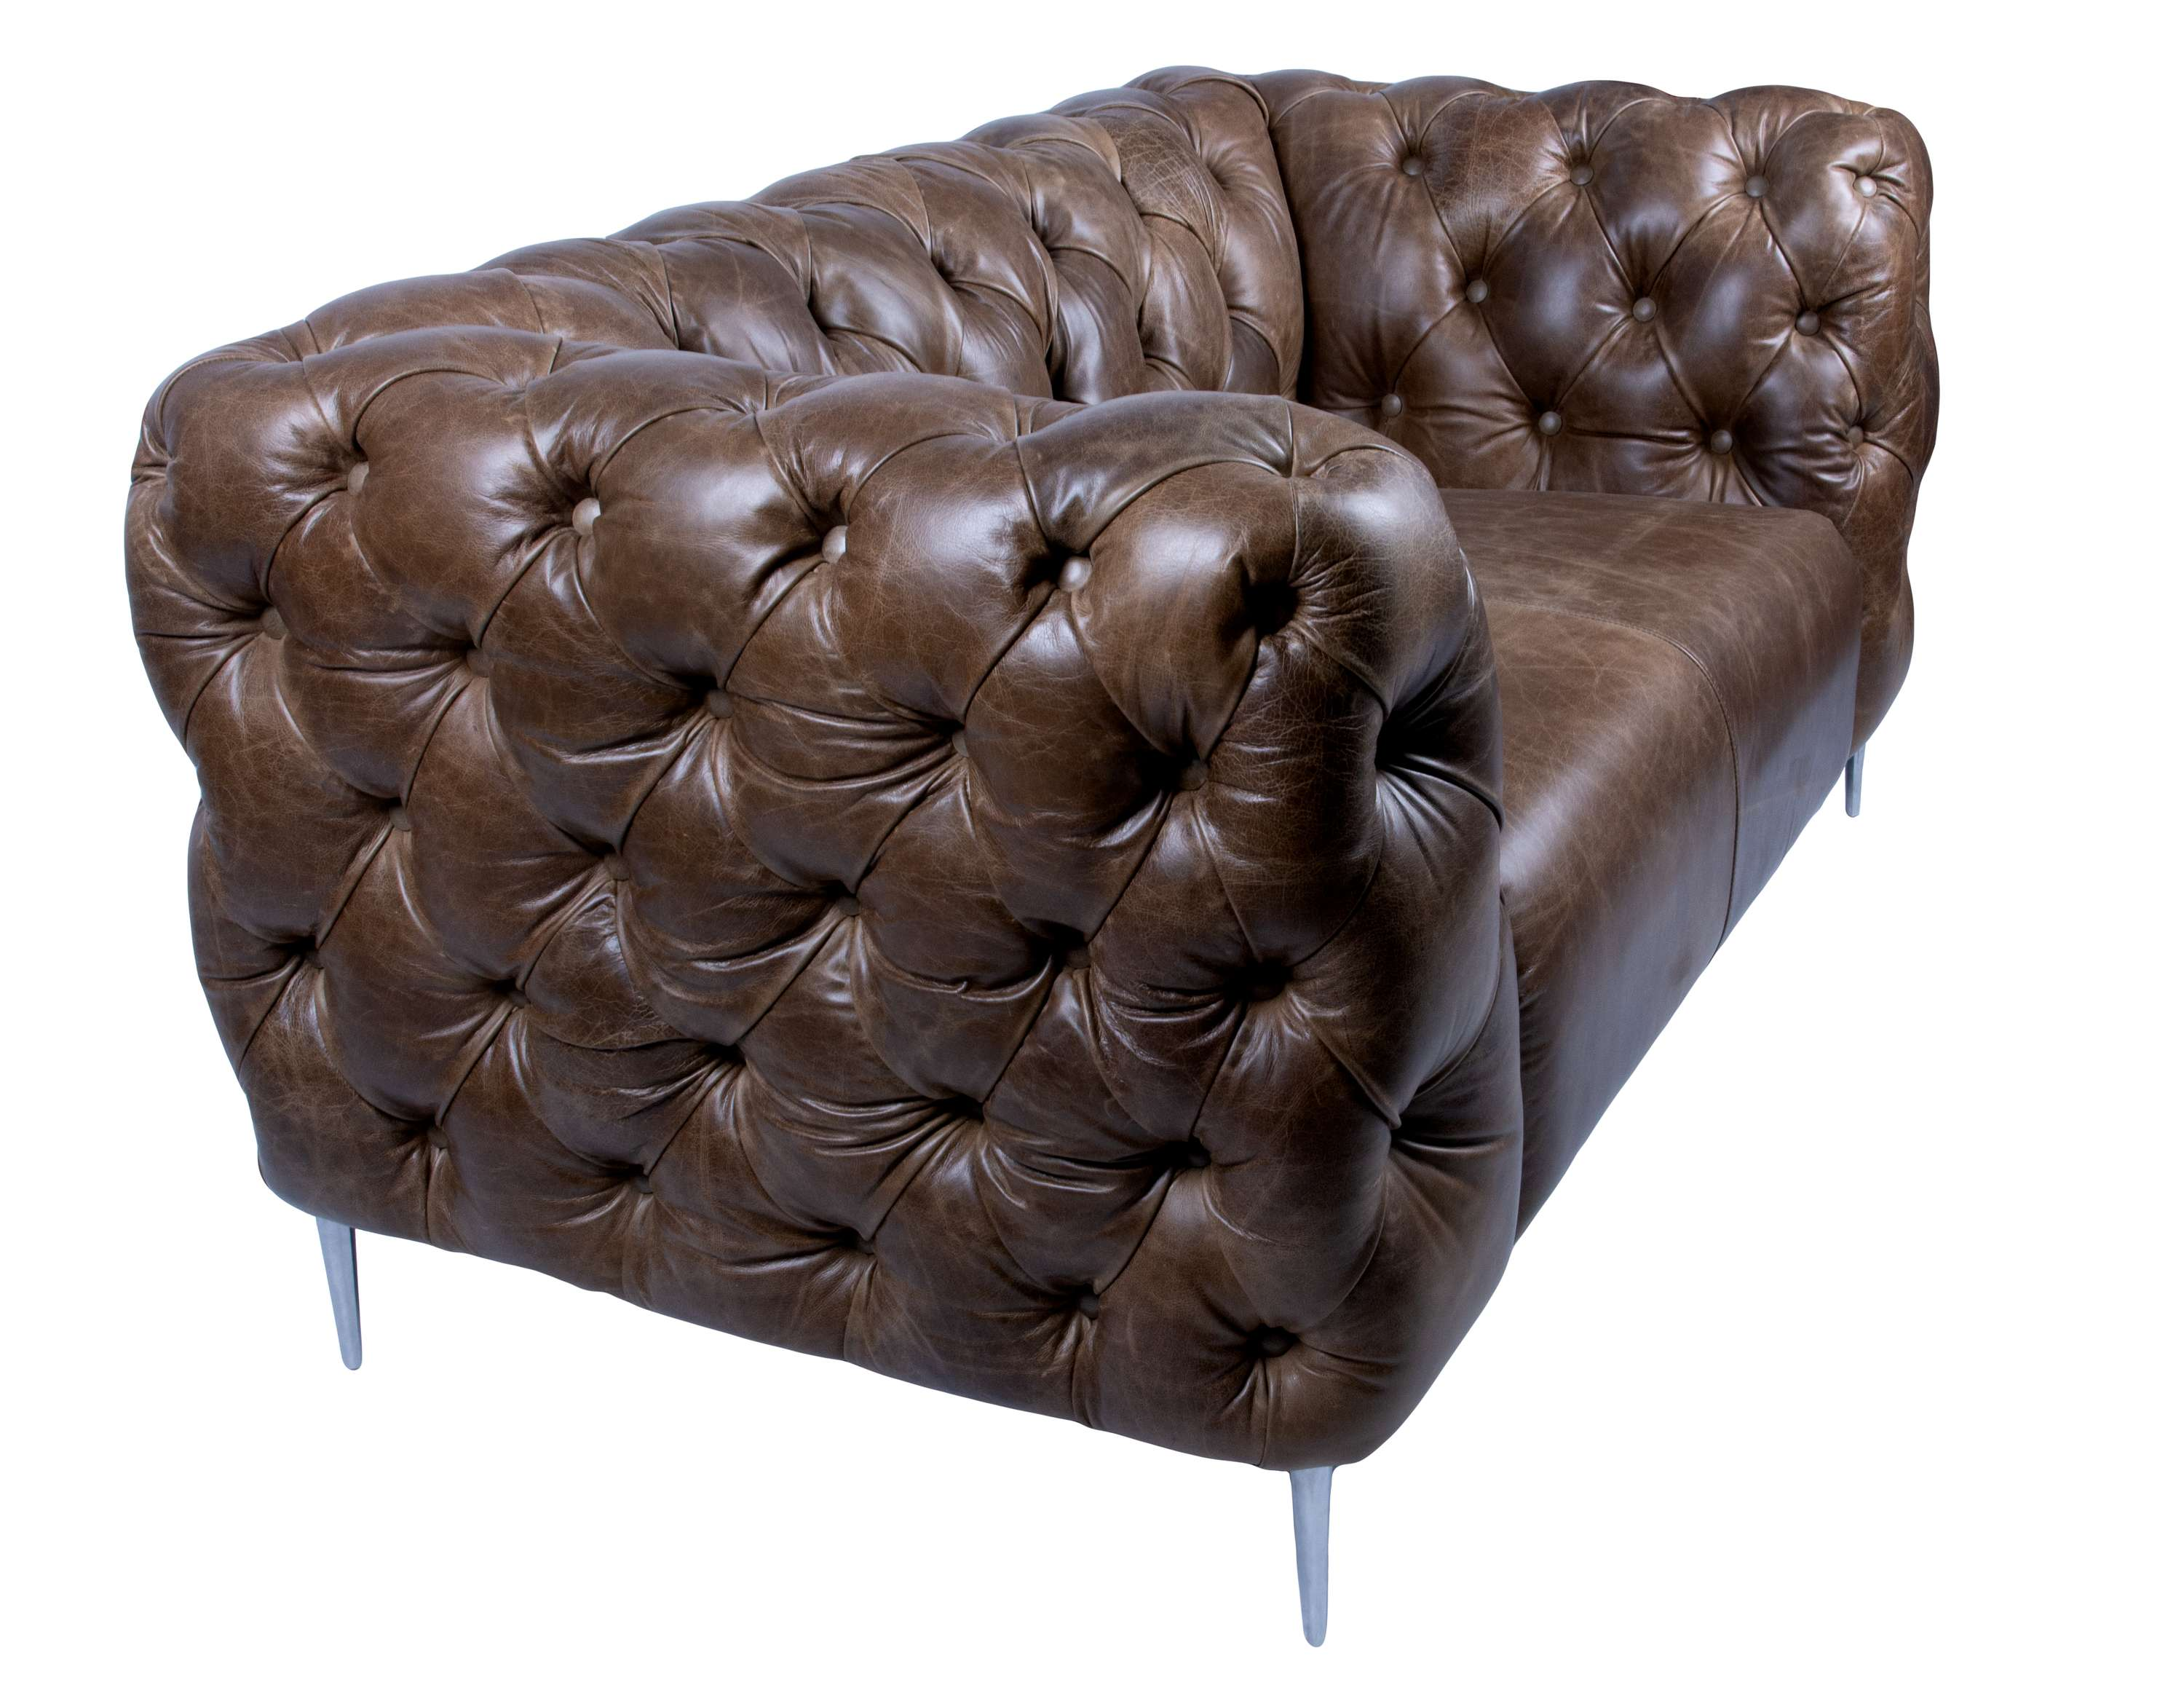 Incredible Italian Vintage Leather Sofa Product Photography Shoot Gmtry Best Dining Table And Chair Ideas Images Gmtryco